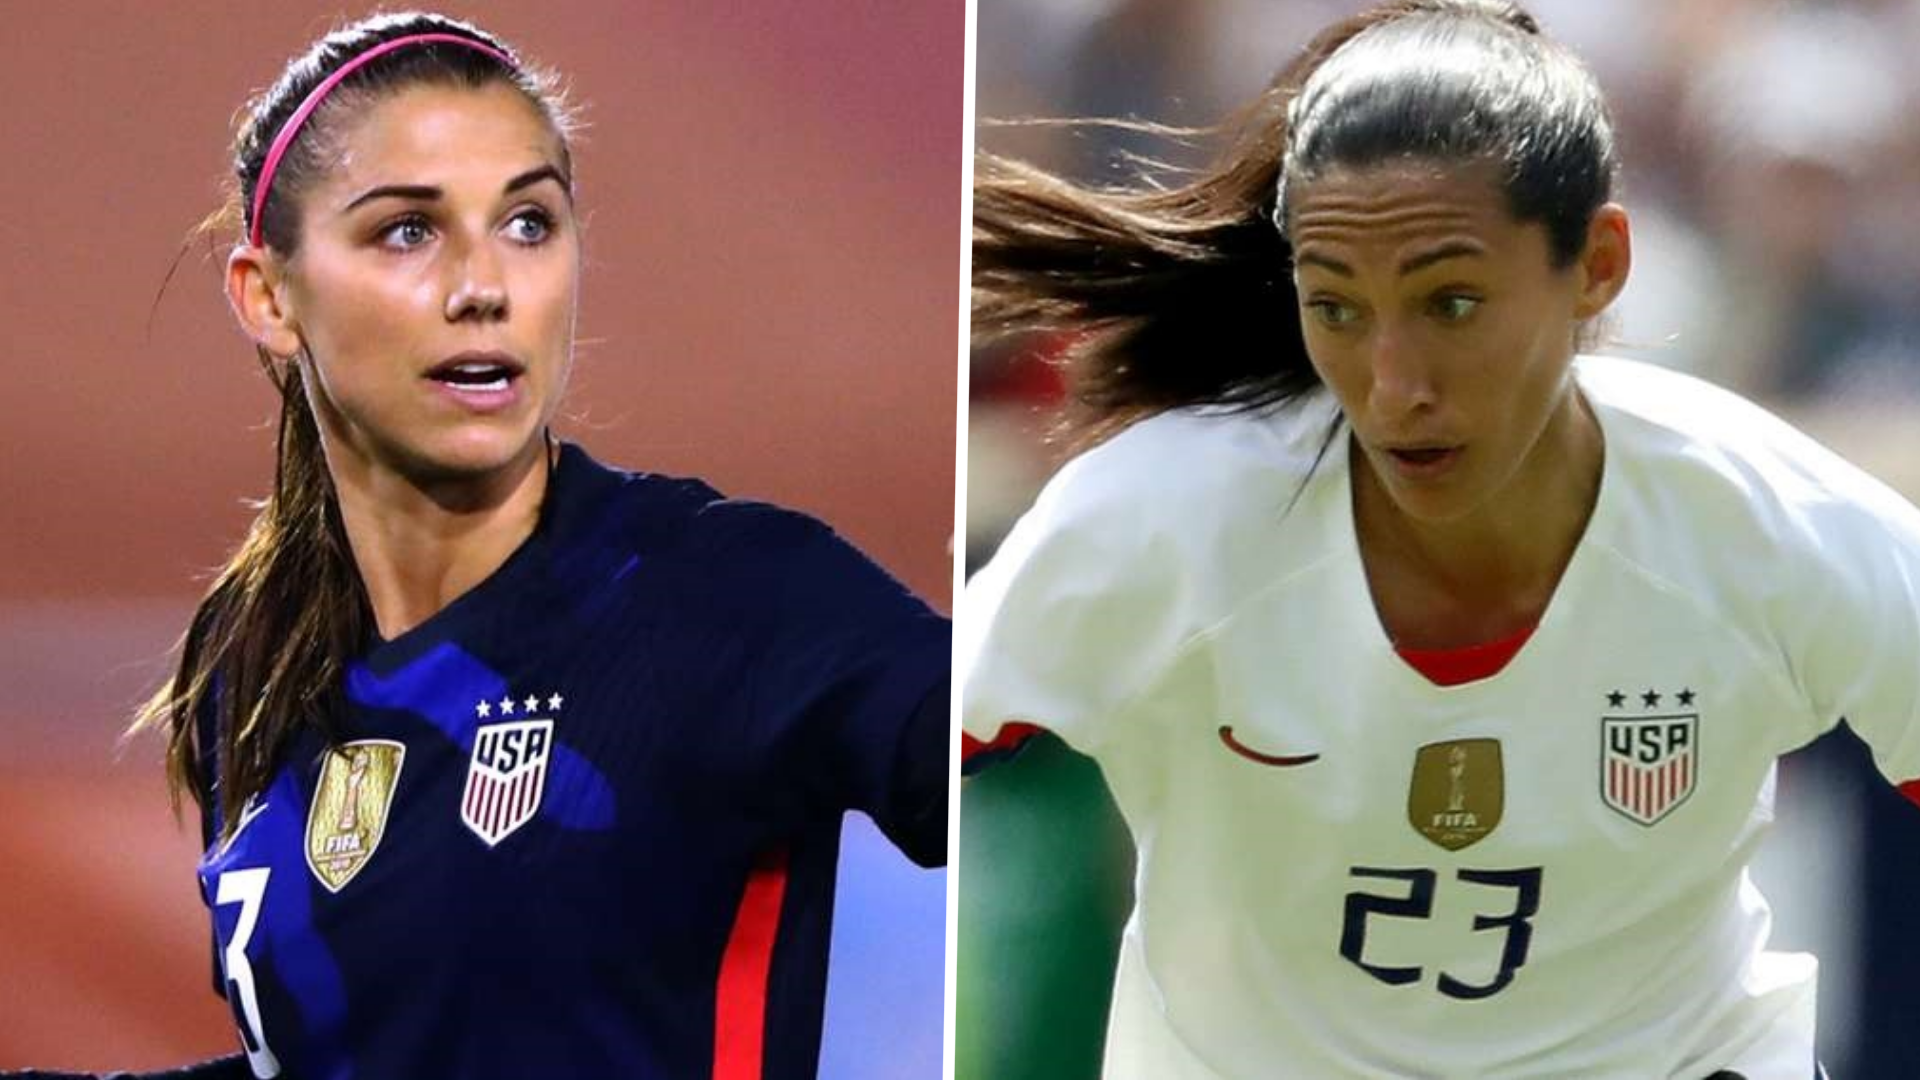 Morgan and Press return to USWNT roster for SheBelieves Cup